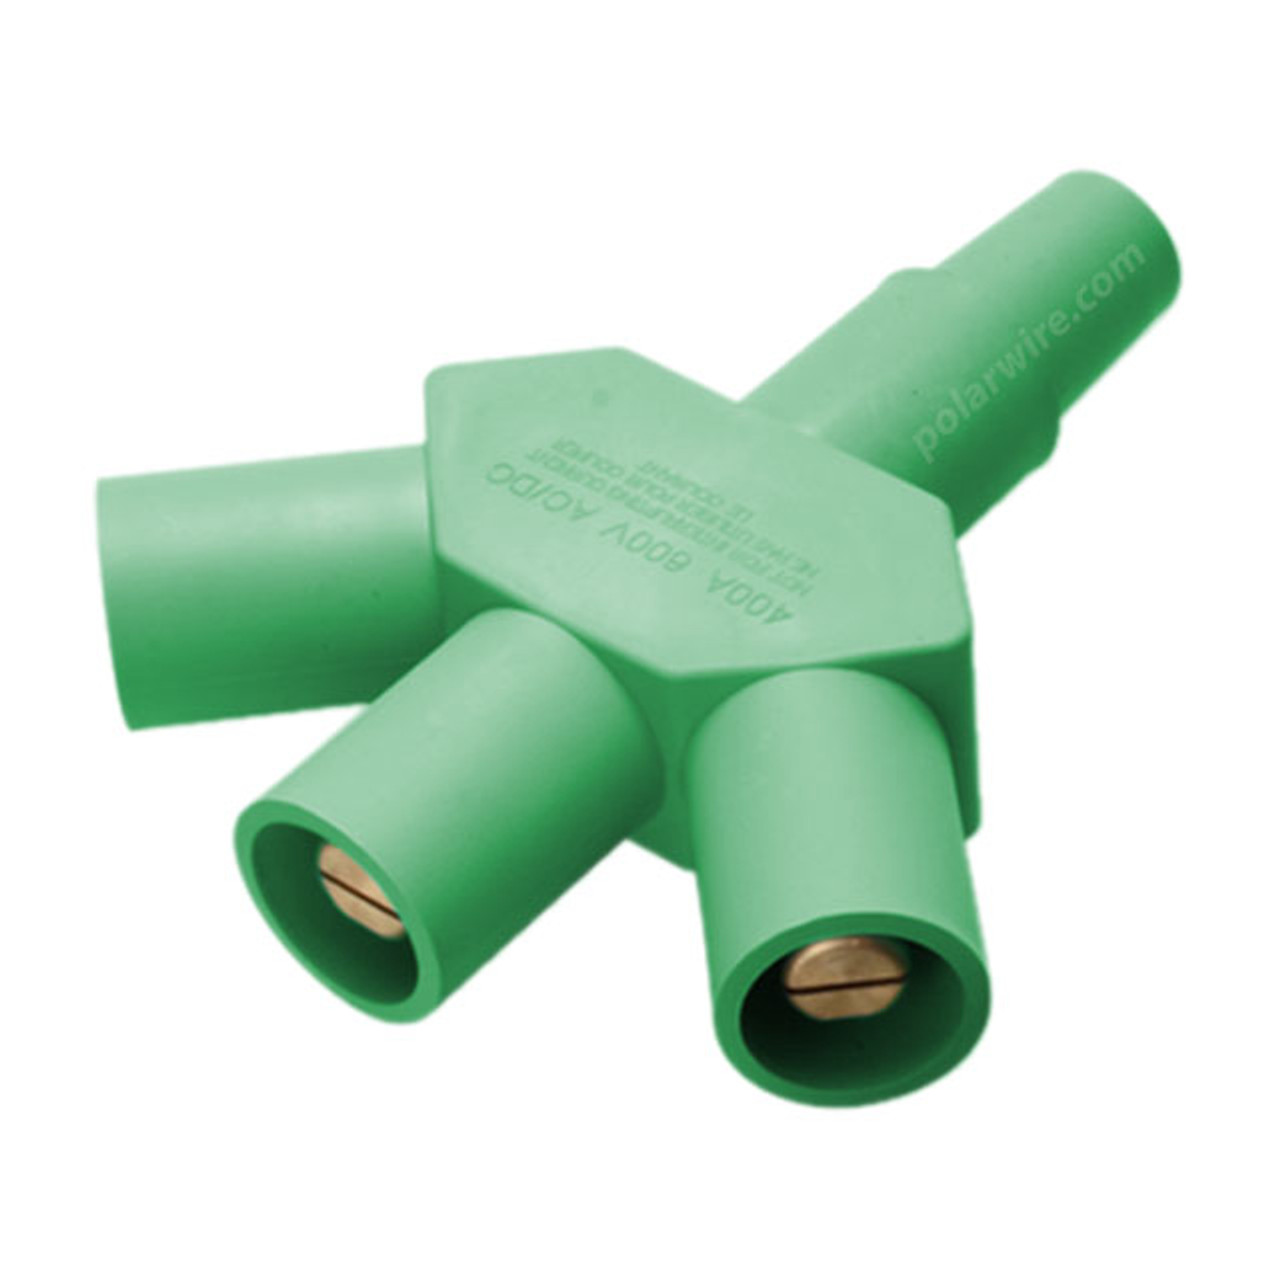 Marinco 400A cam lock reverse 3fer adapter female-male-male-male, green hard 3-line tap connector